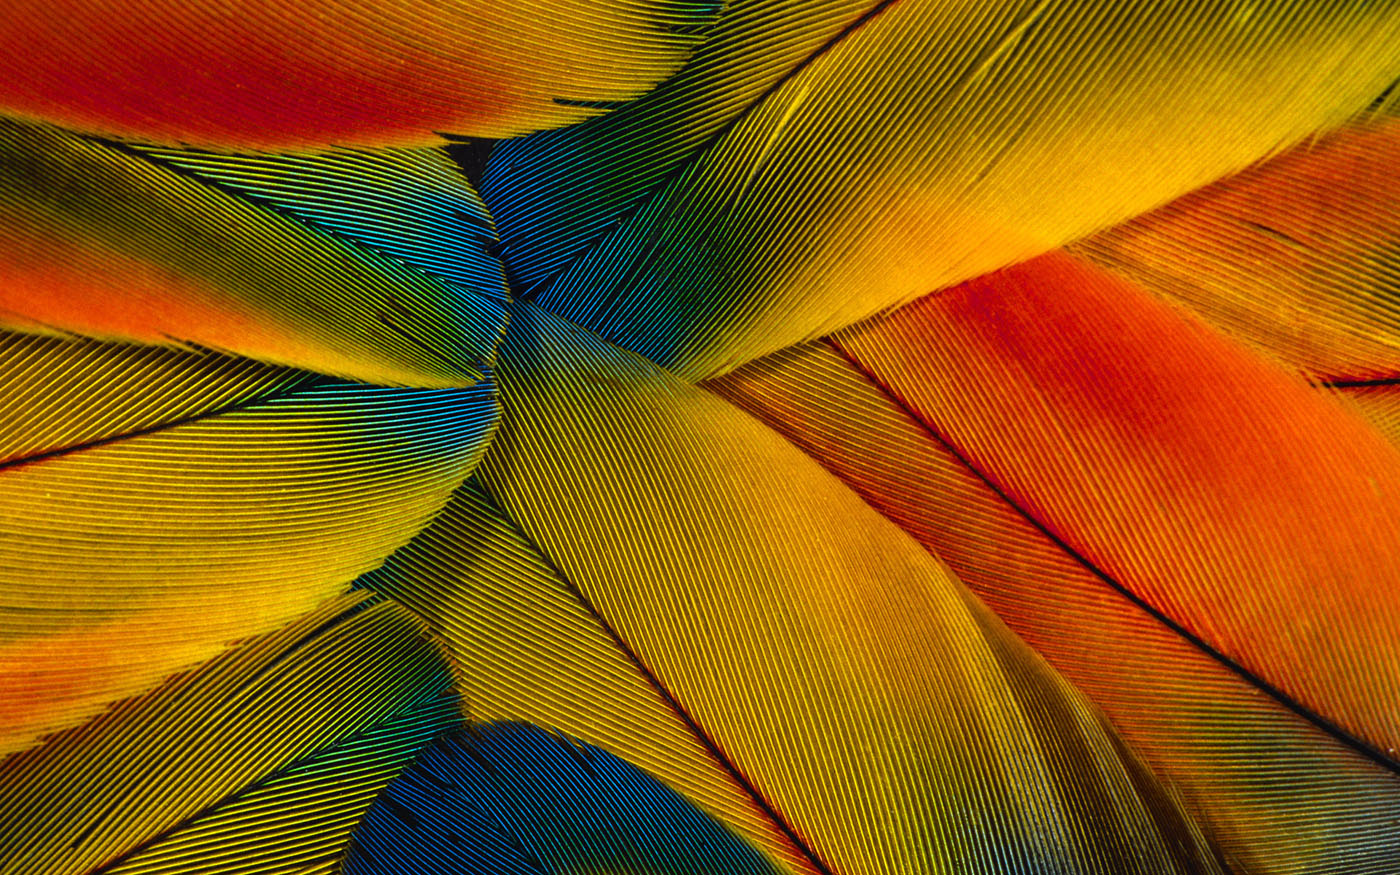 Feather wings close-up 29546